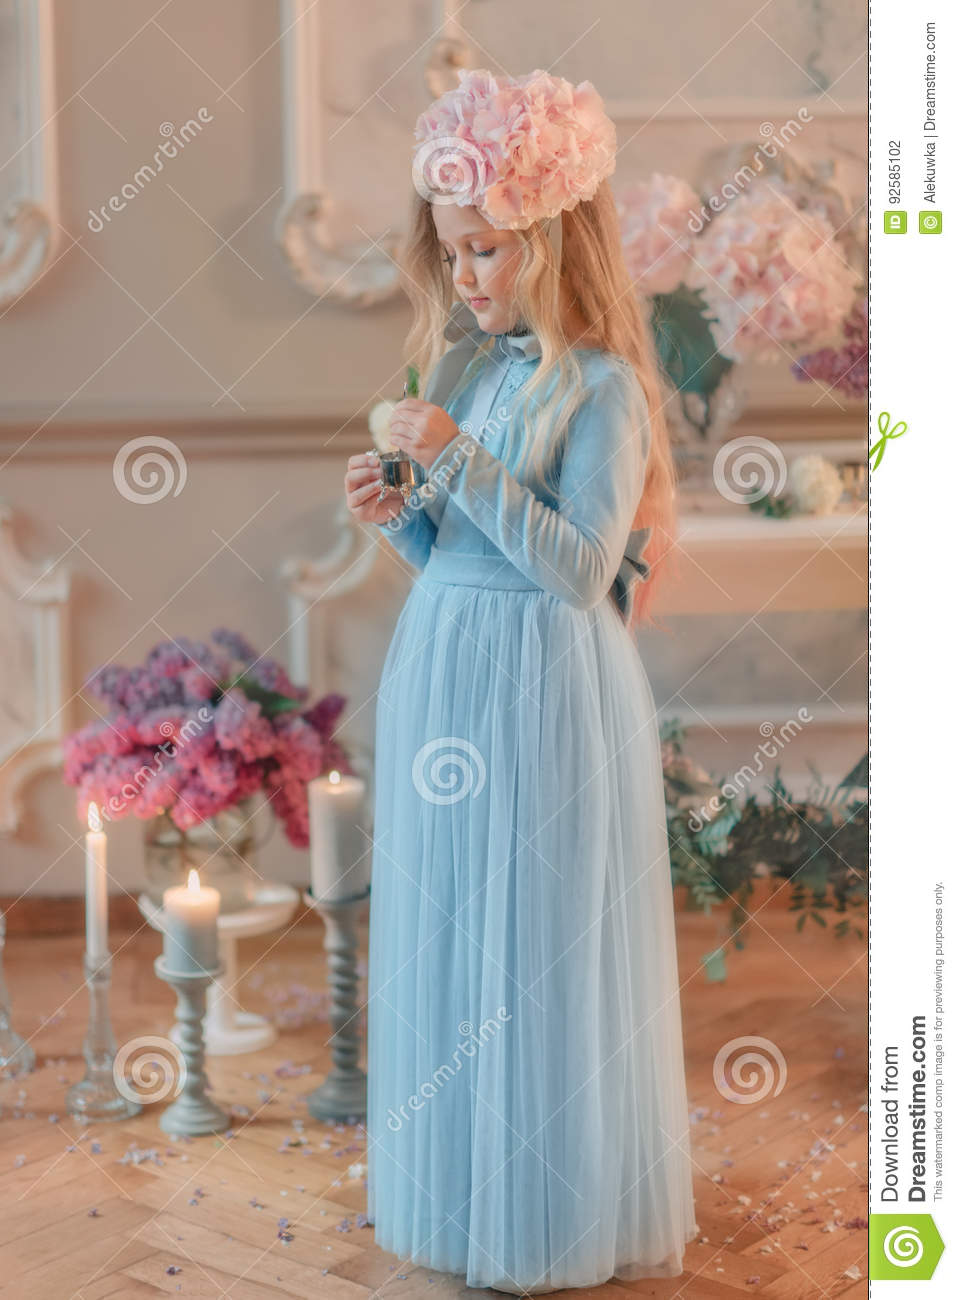 Blond Girl In Blue Dress And With A Flower On The Head Stock Photo